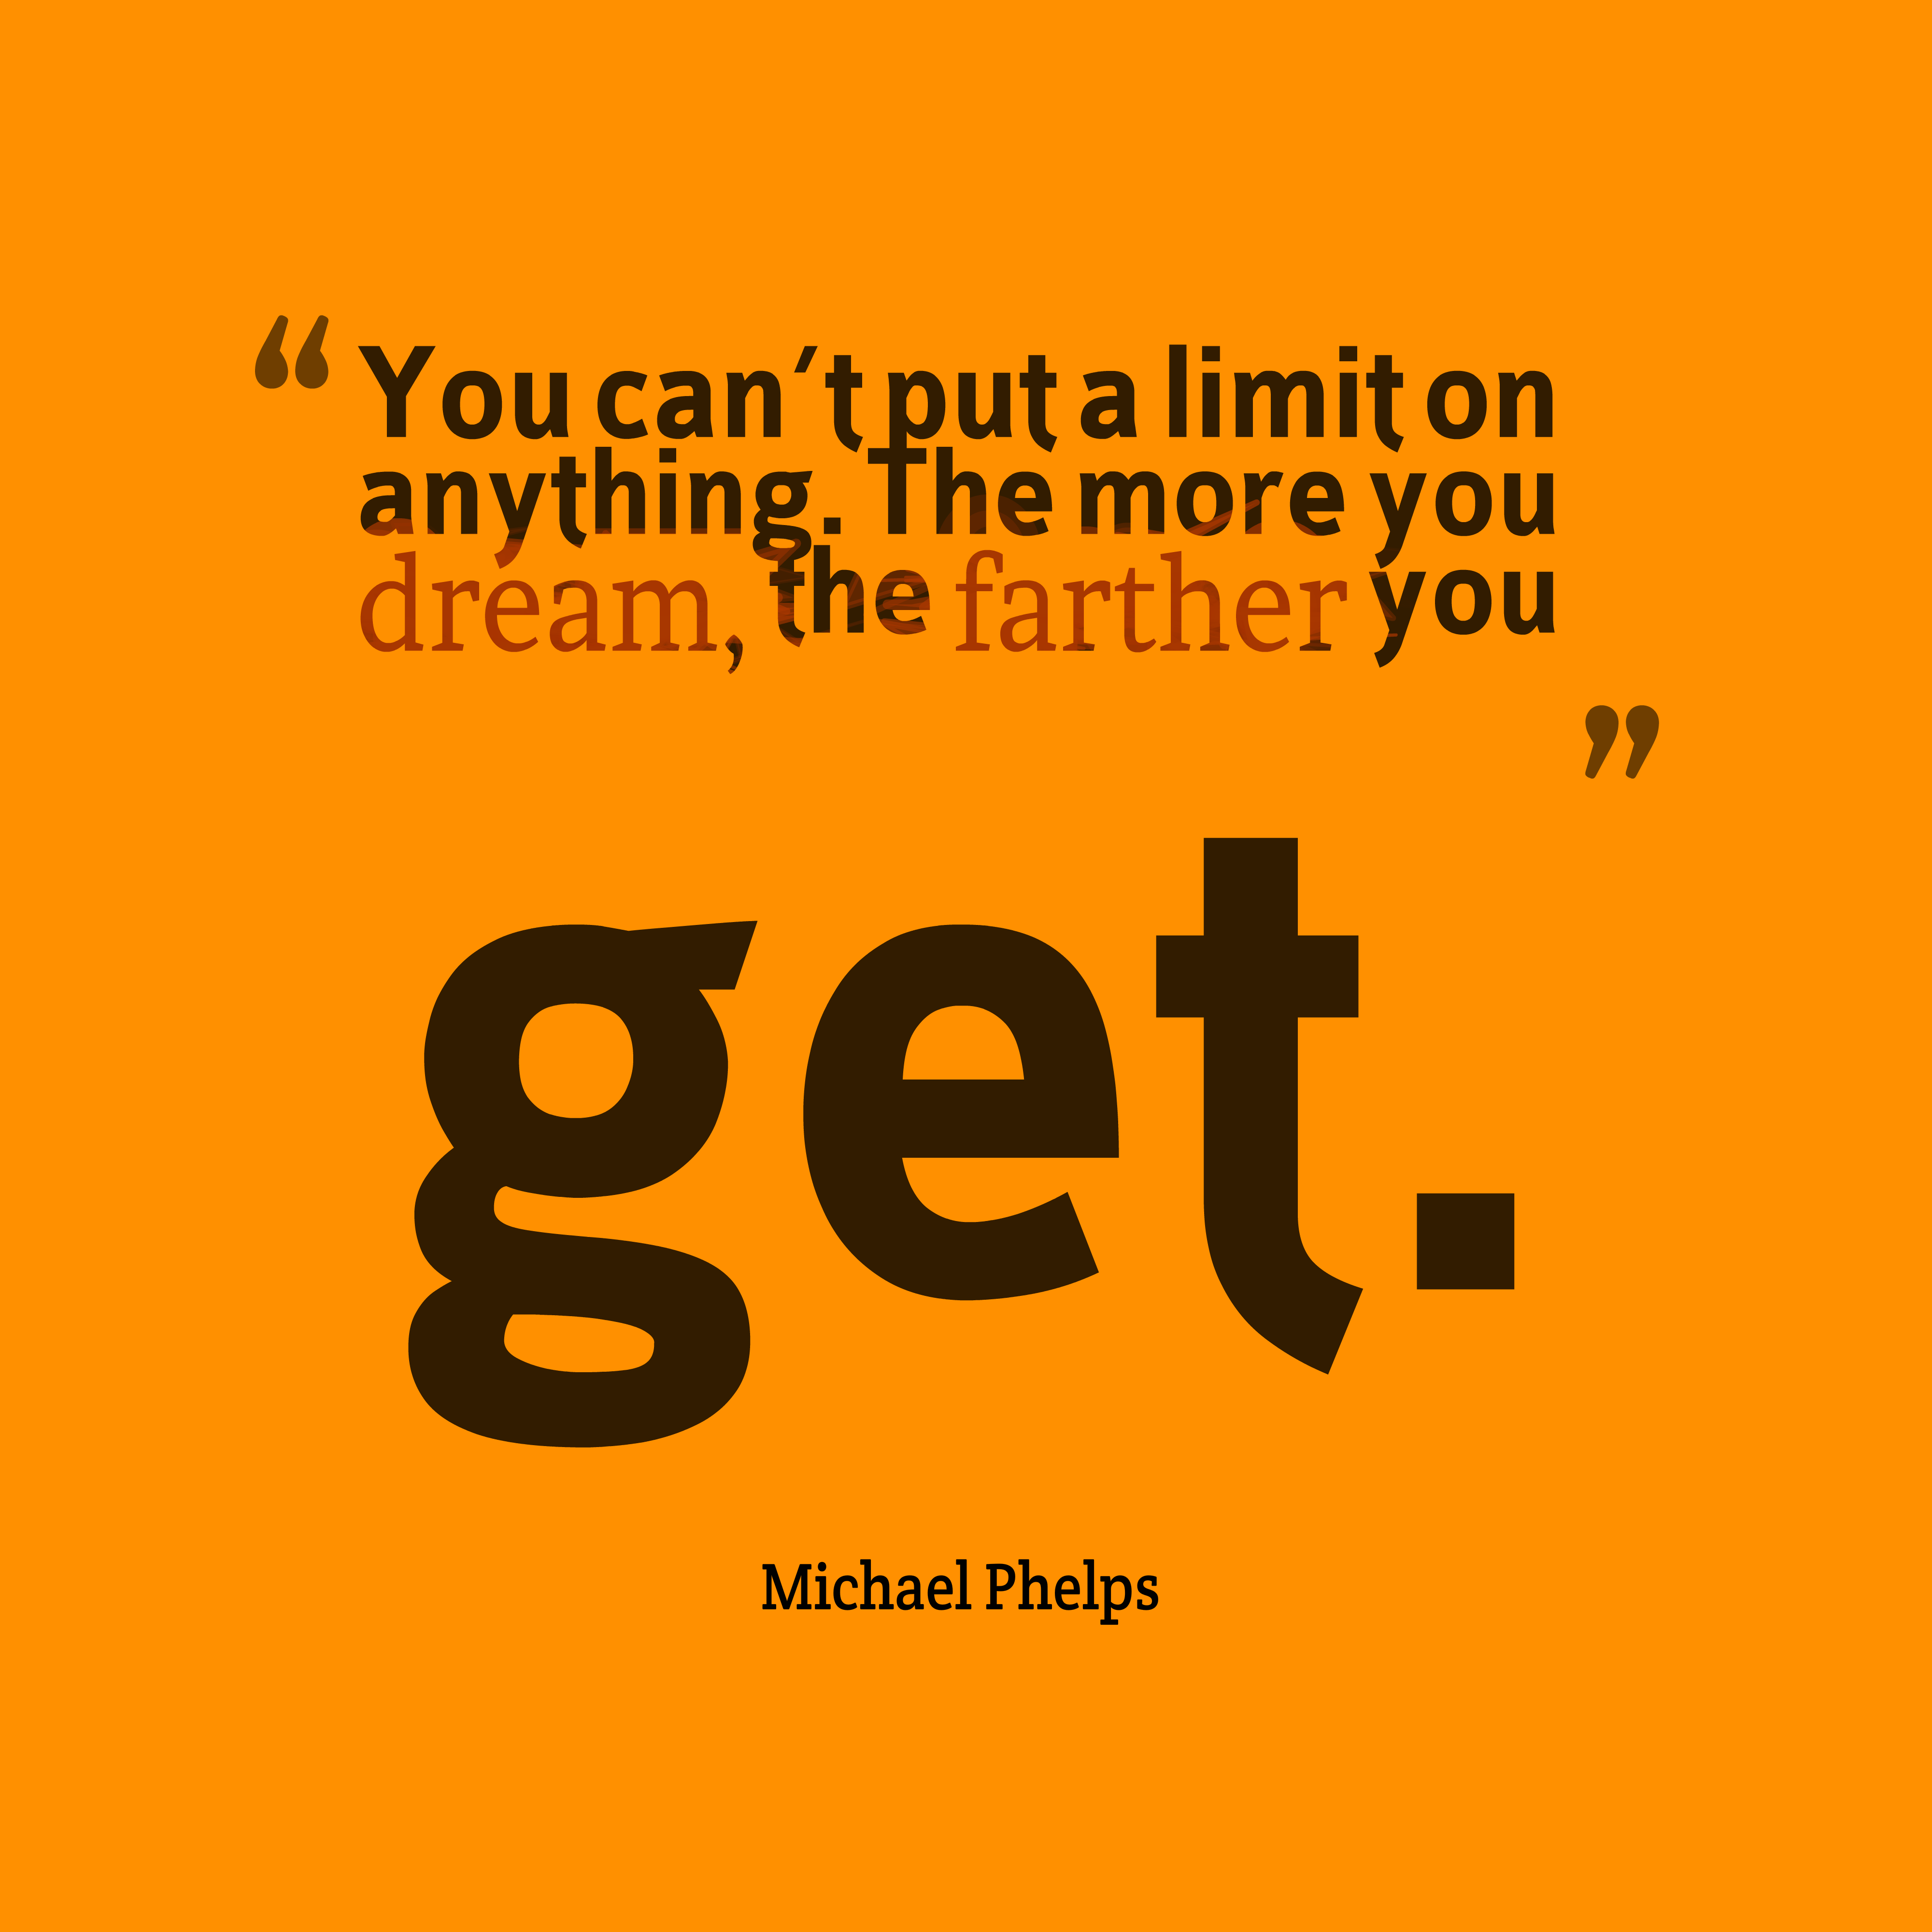 Quotes image of You can't put a limit on anything. The more you dream, the farther you get.